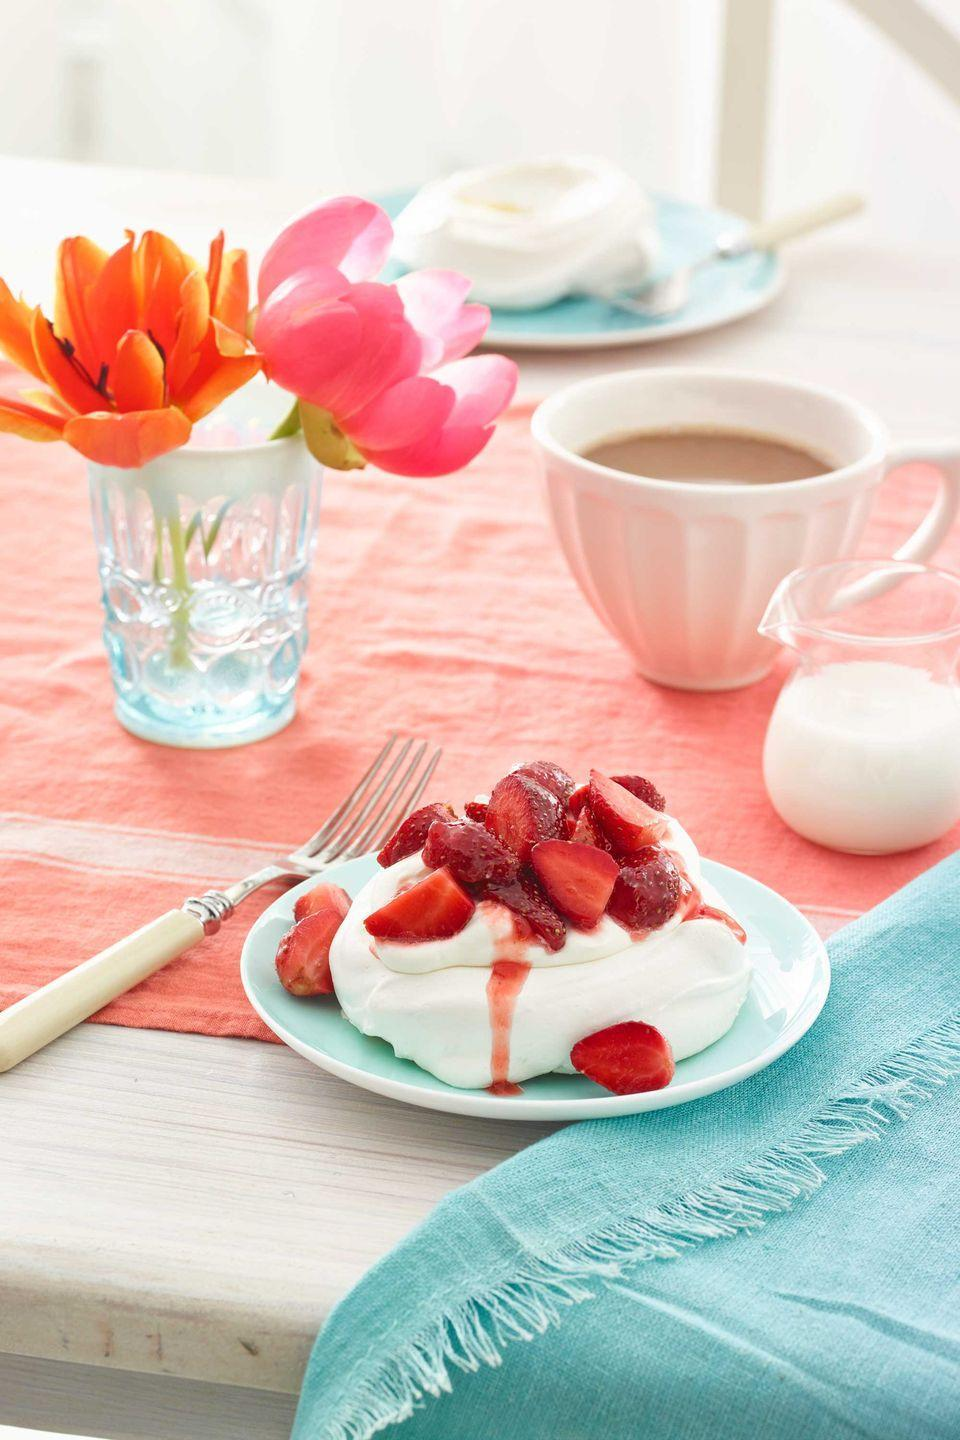 """<p>These elegant meringue treats will satisfy every sweet tooth. </p><p><em><a href=""""https://www.womansday.com/food-recipes/food-drinks/recipes/a54431/pavlovas-with-strawberries-and-cream-recipe/"""" rel=""""nofollow noopener"""" target=""""_blank"""" data-ylk=""""slk:Get the recipe for Pavlovas with Strawberries and Cream."""" class=""""link rapid-noclick-resp"""">Get the recipe for Pavlovas with Strawberries and Cream.</a></em></p>"""